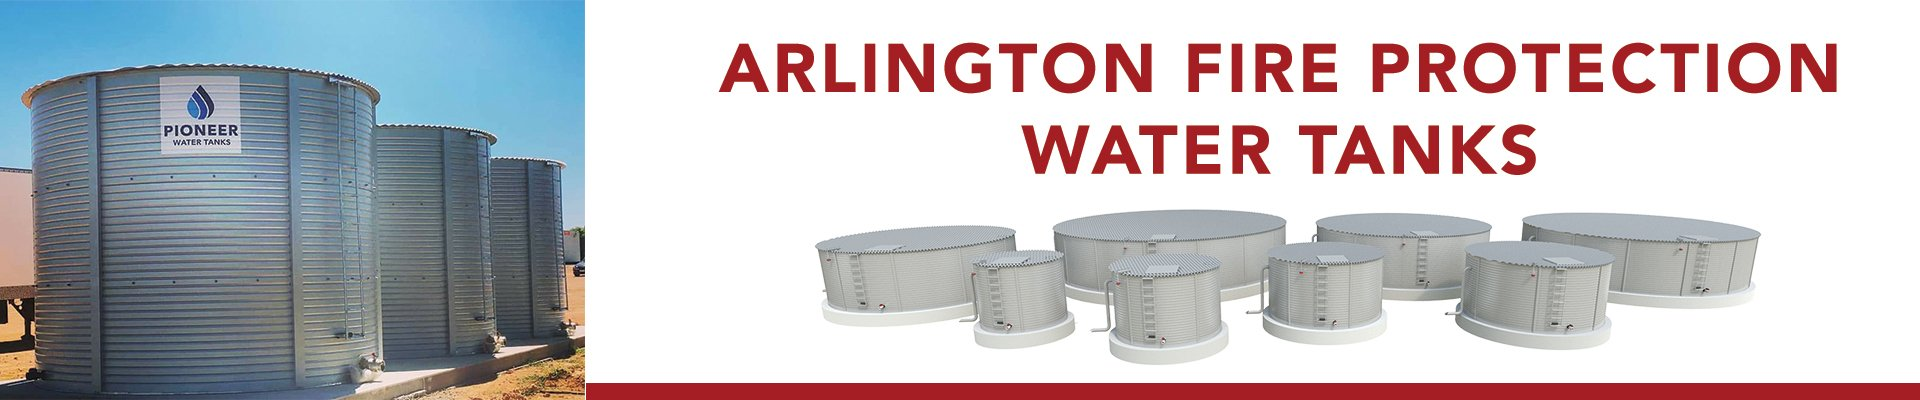 Arlington Texas Fire Protection Water Tanks